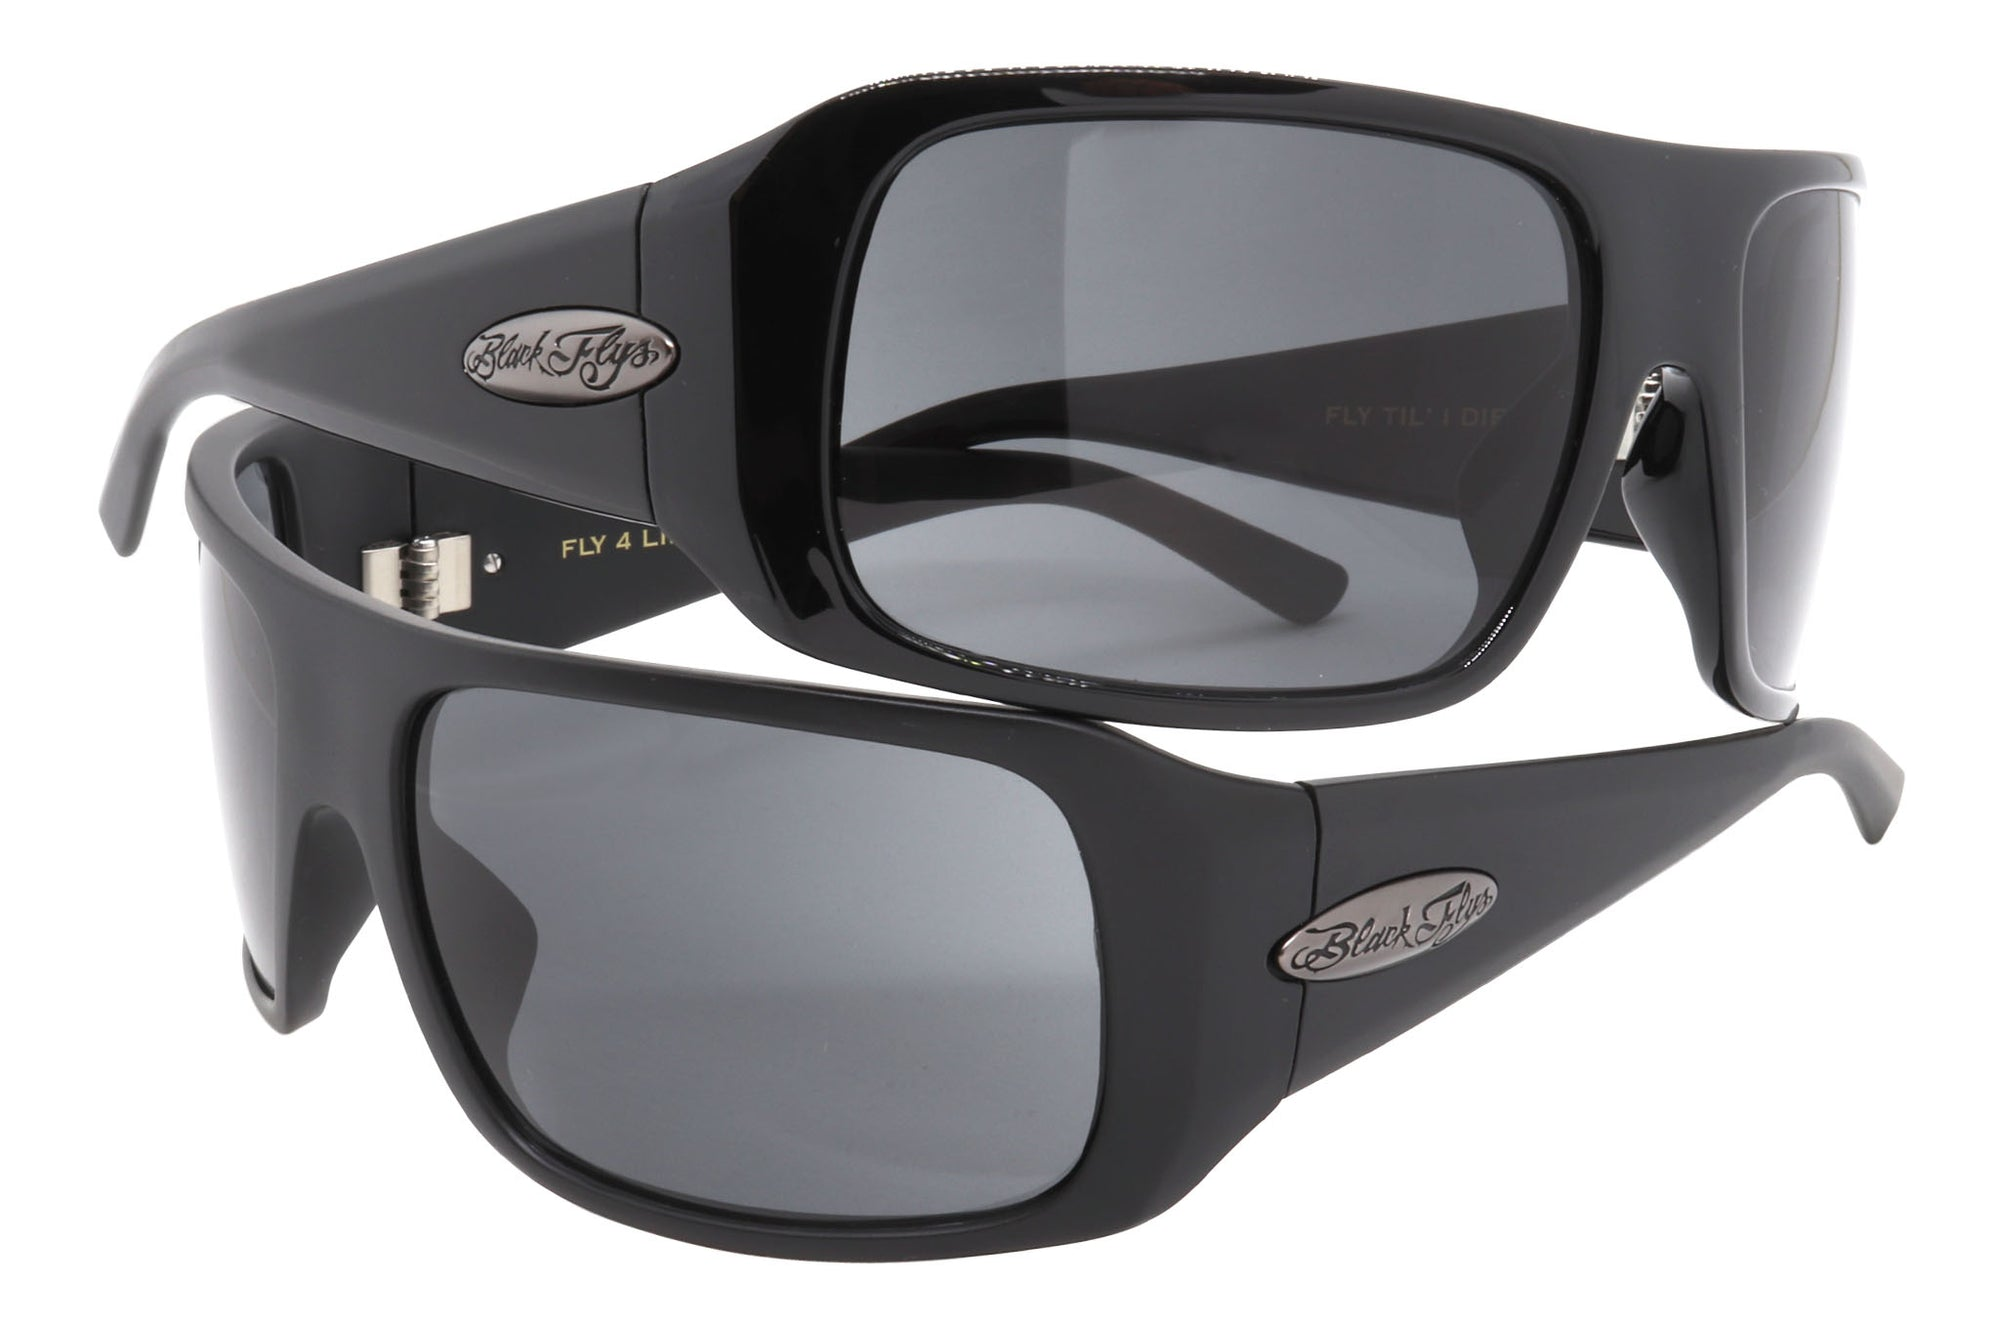 Fly 4 LIfe Polarized